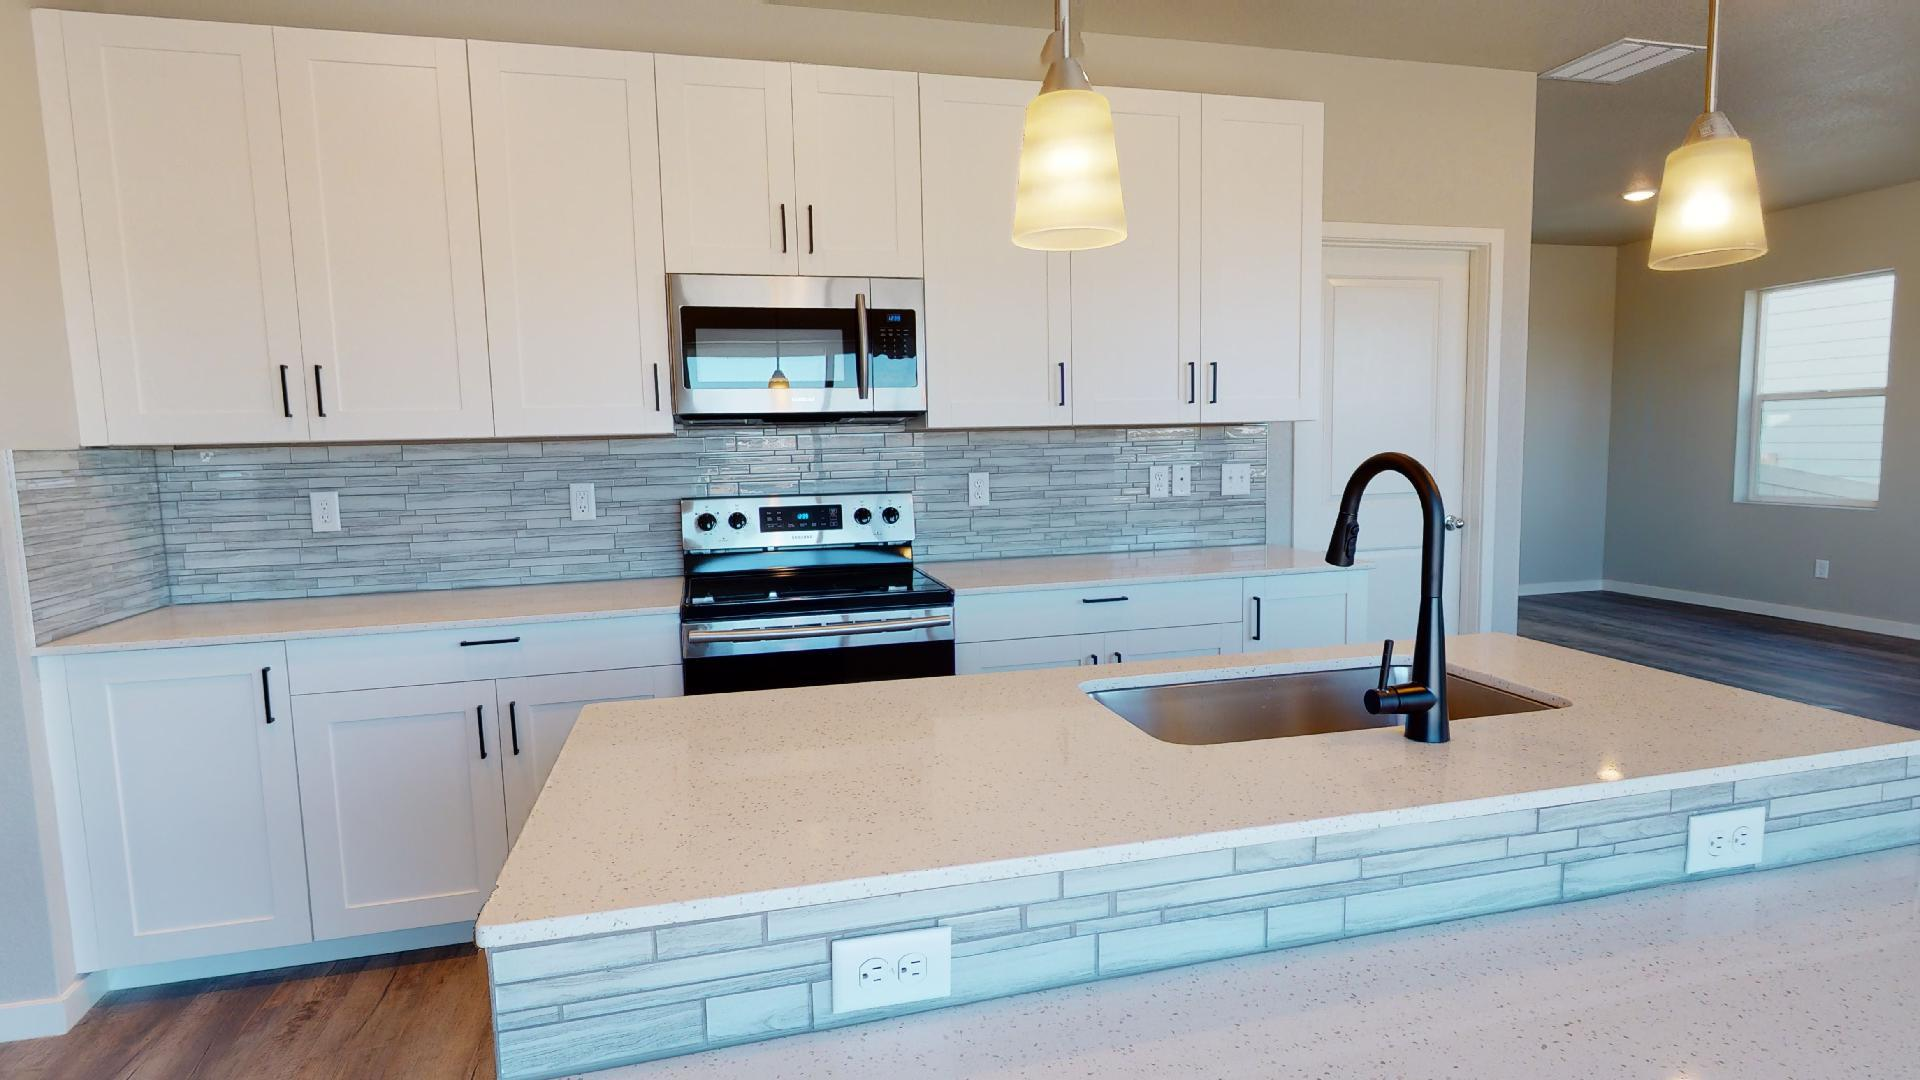 Kitchen featured in the Welby By Baessler Homes in Greeley, CO